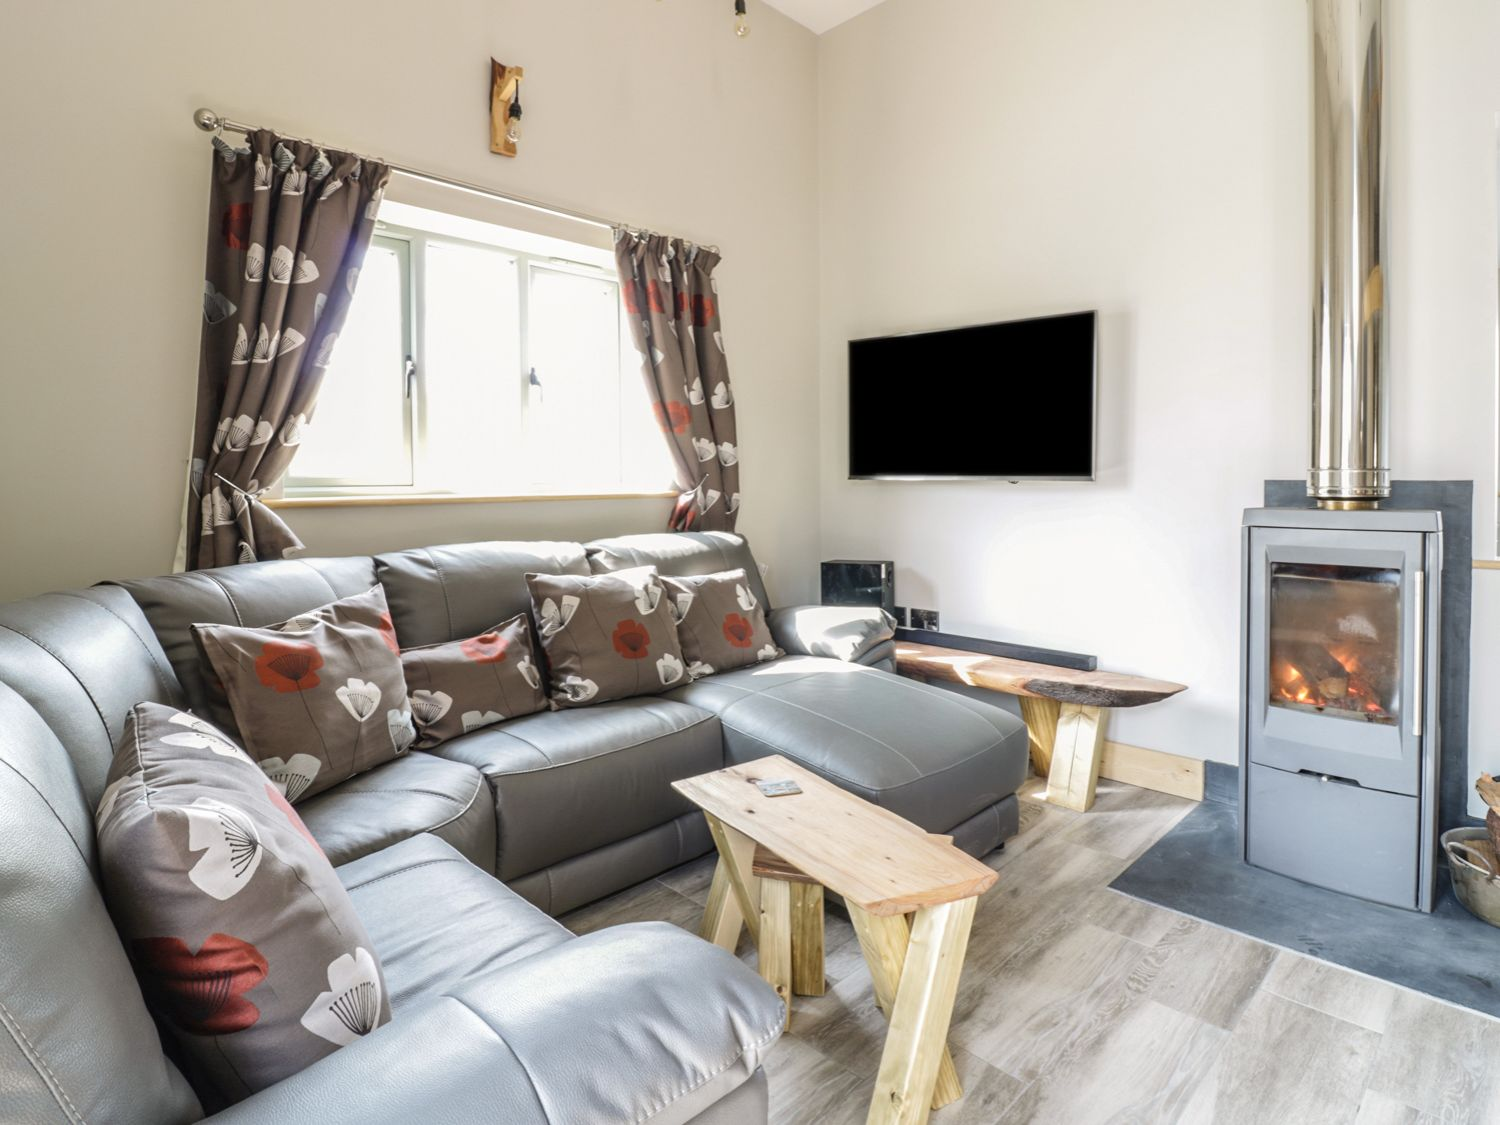 An Bowji in Newquay - sleeps 7 people